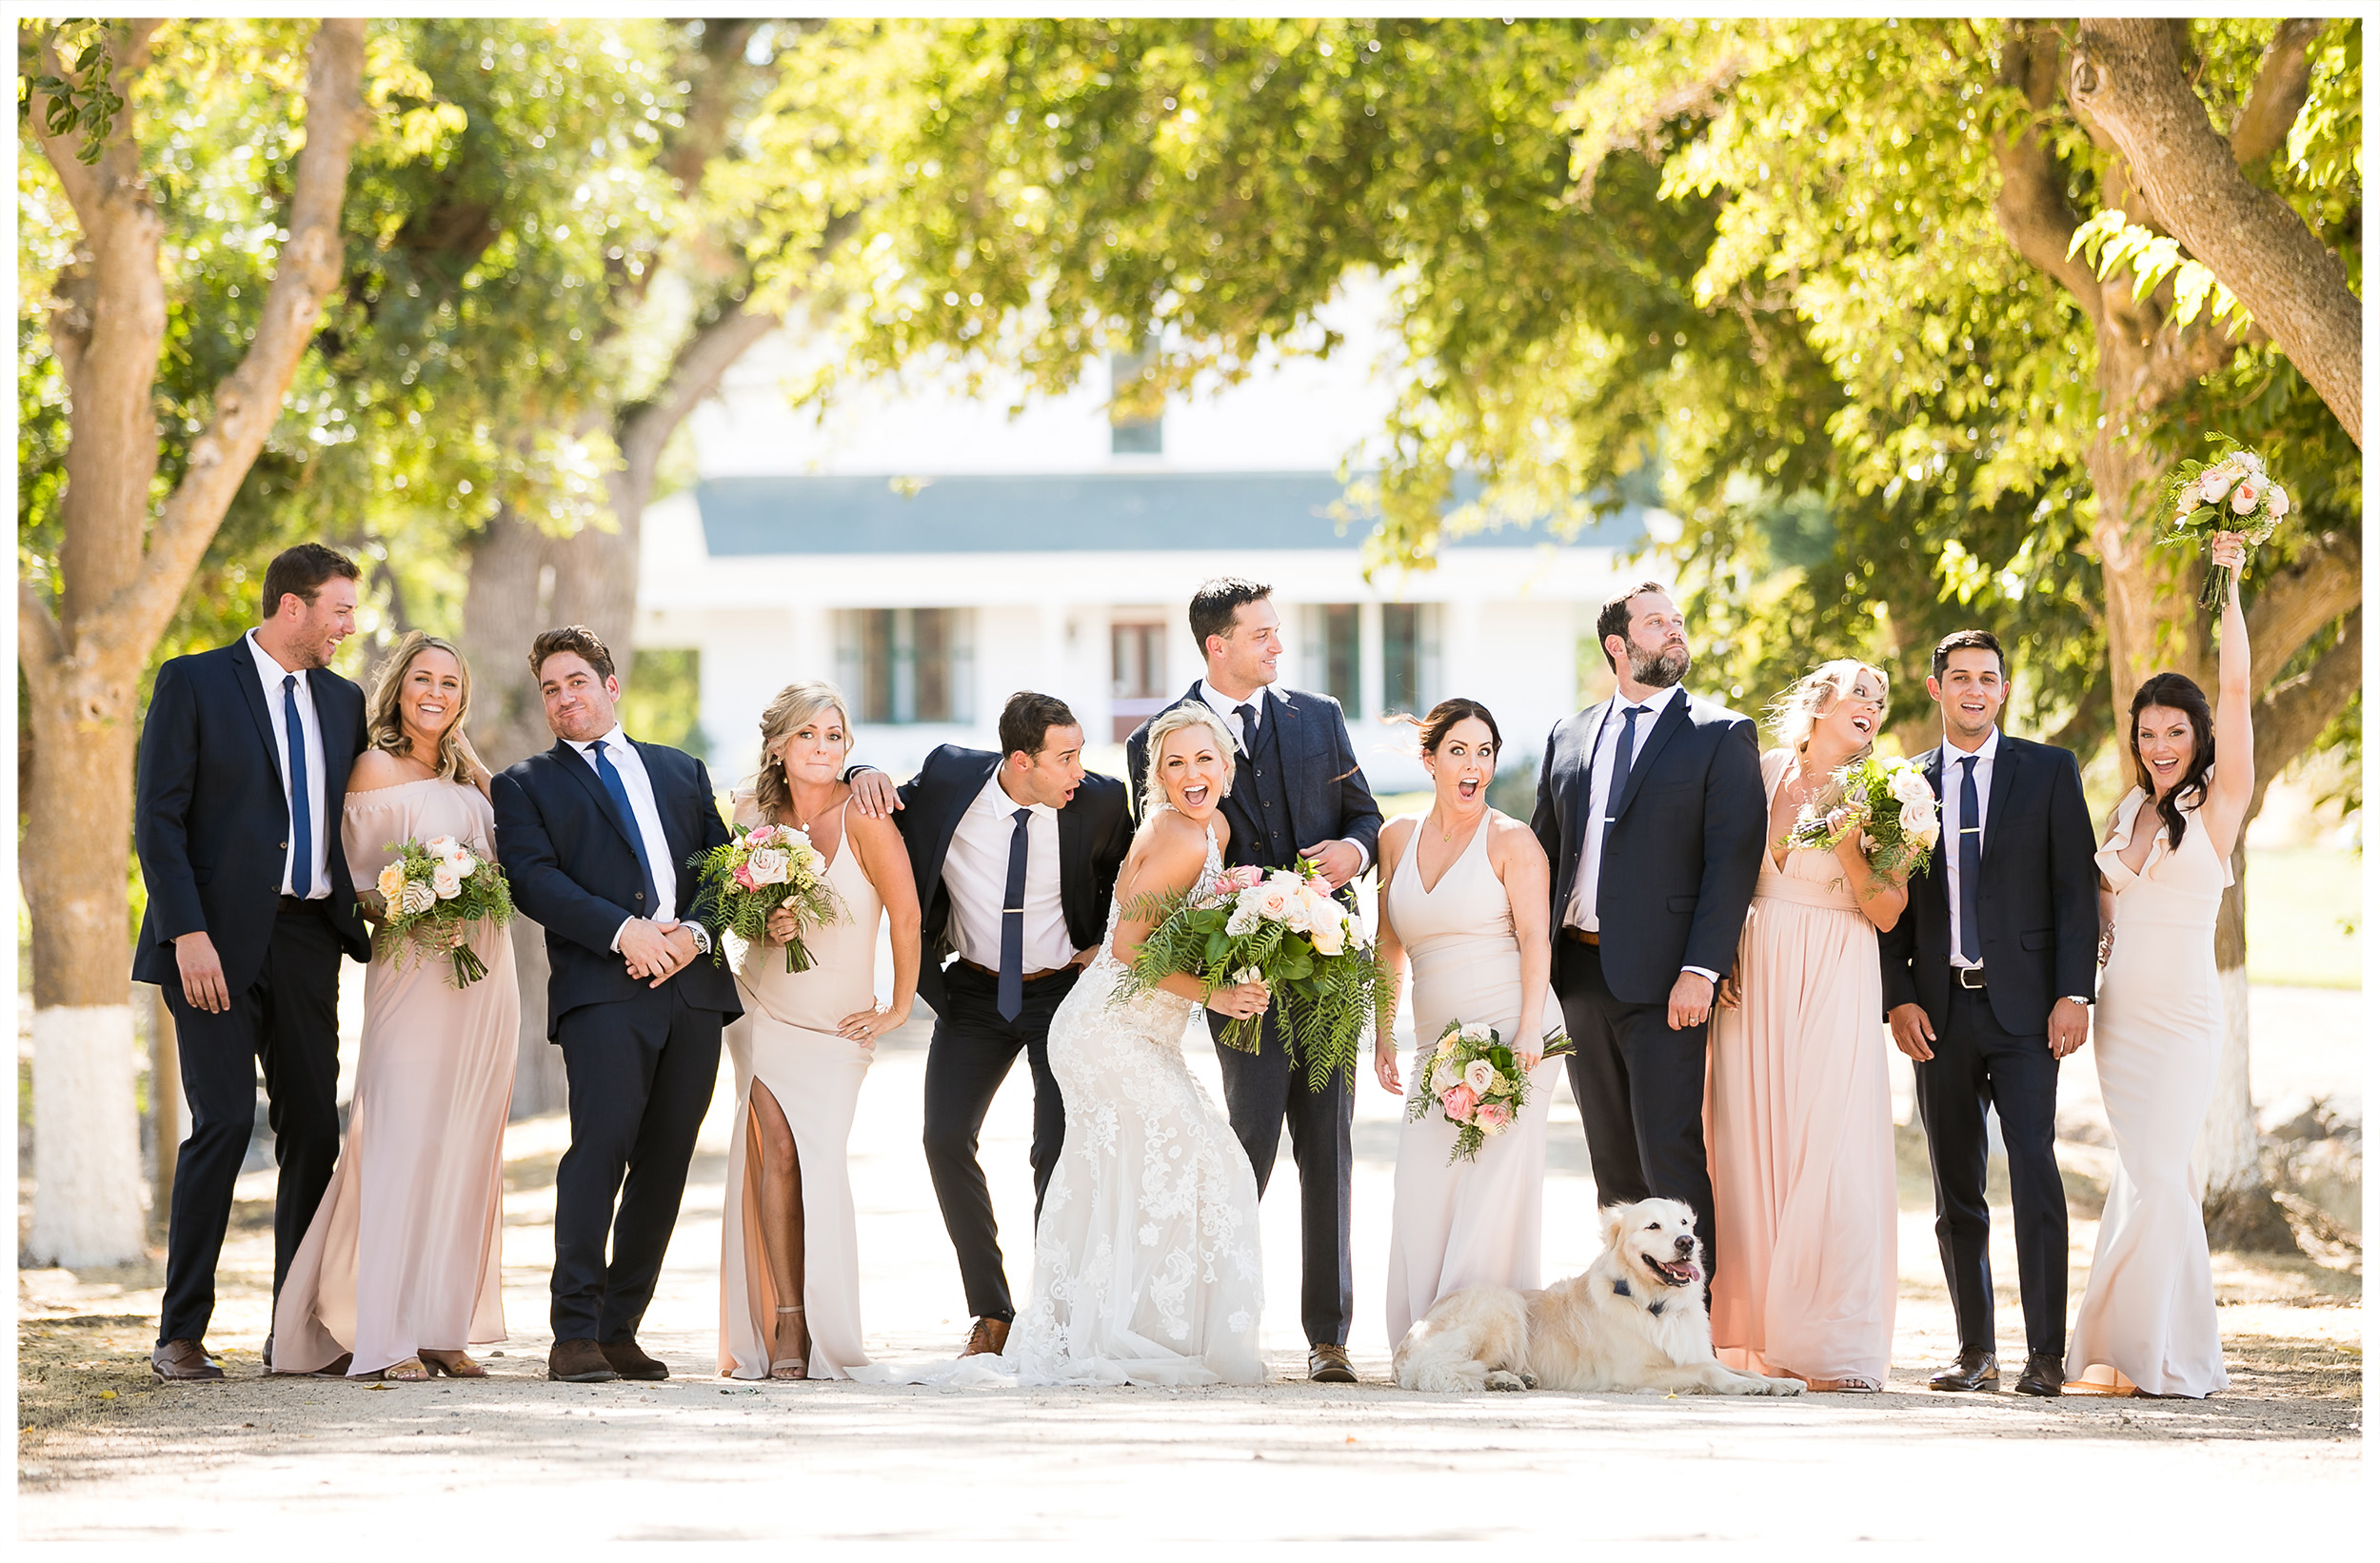 MA-Chandler-Ranch-Paso-Robles-Wedding-Photography-49.jpg